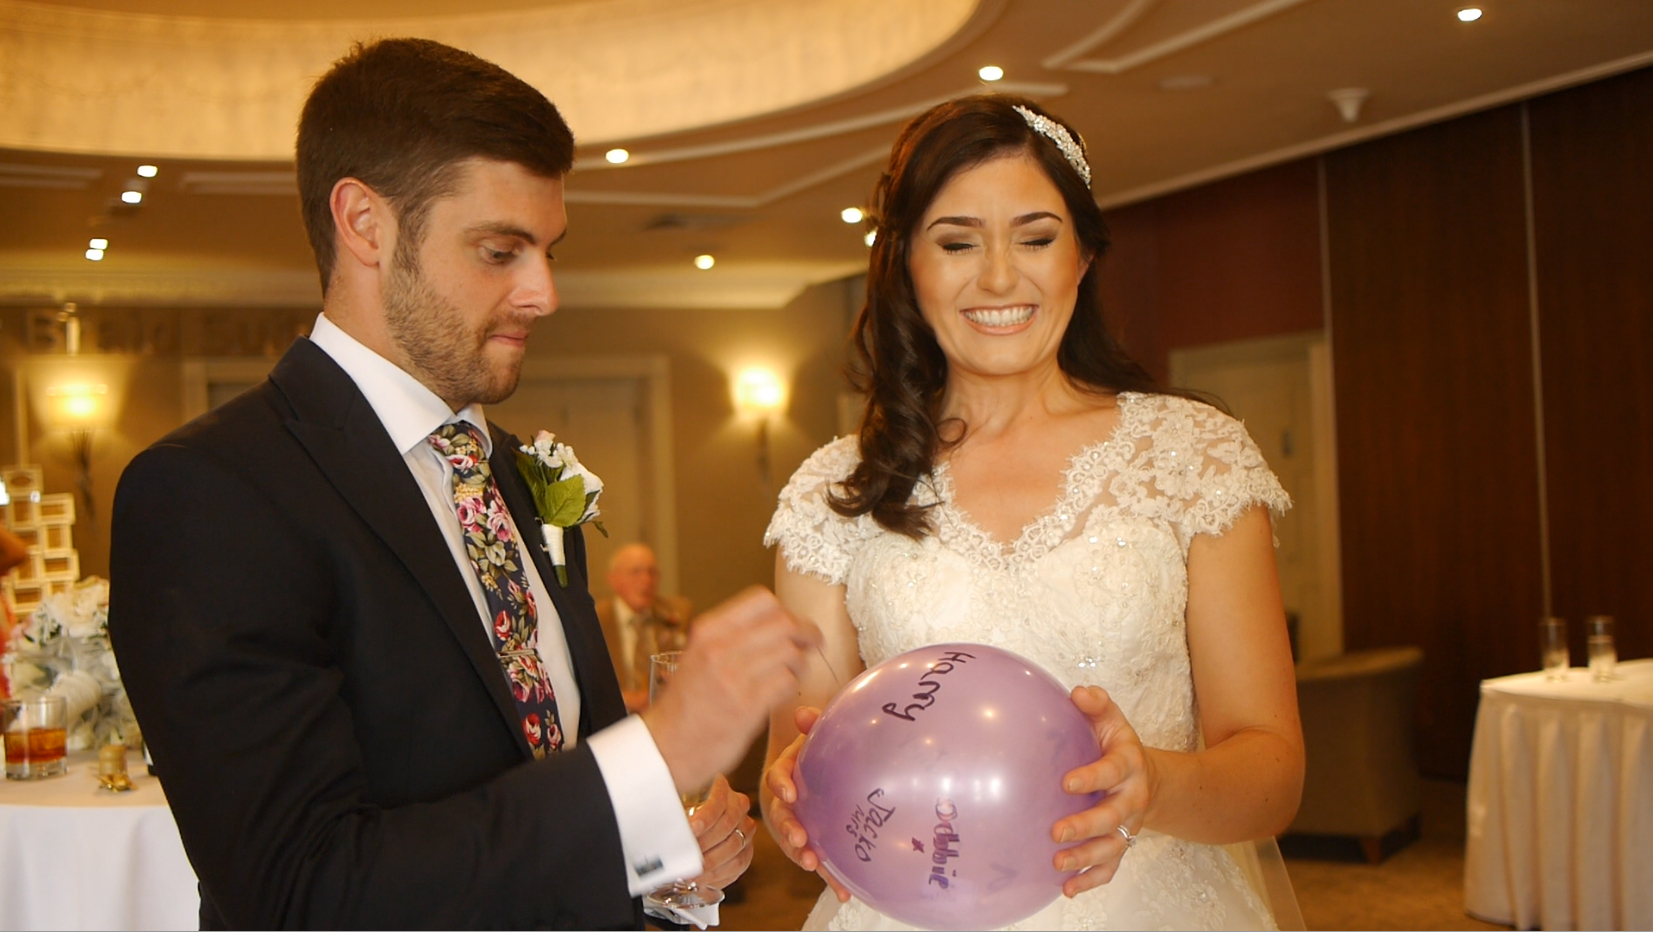 manchester wedding magician and mind reader popping a balloon